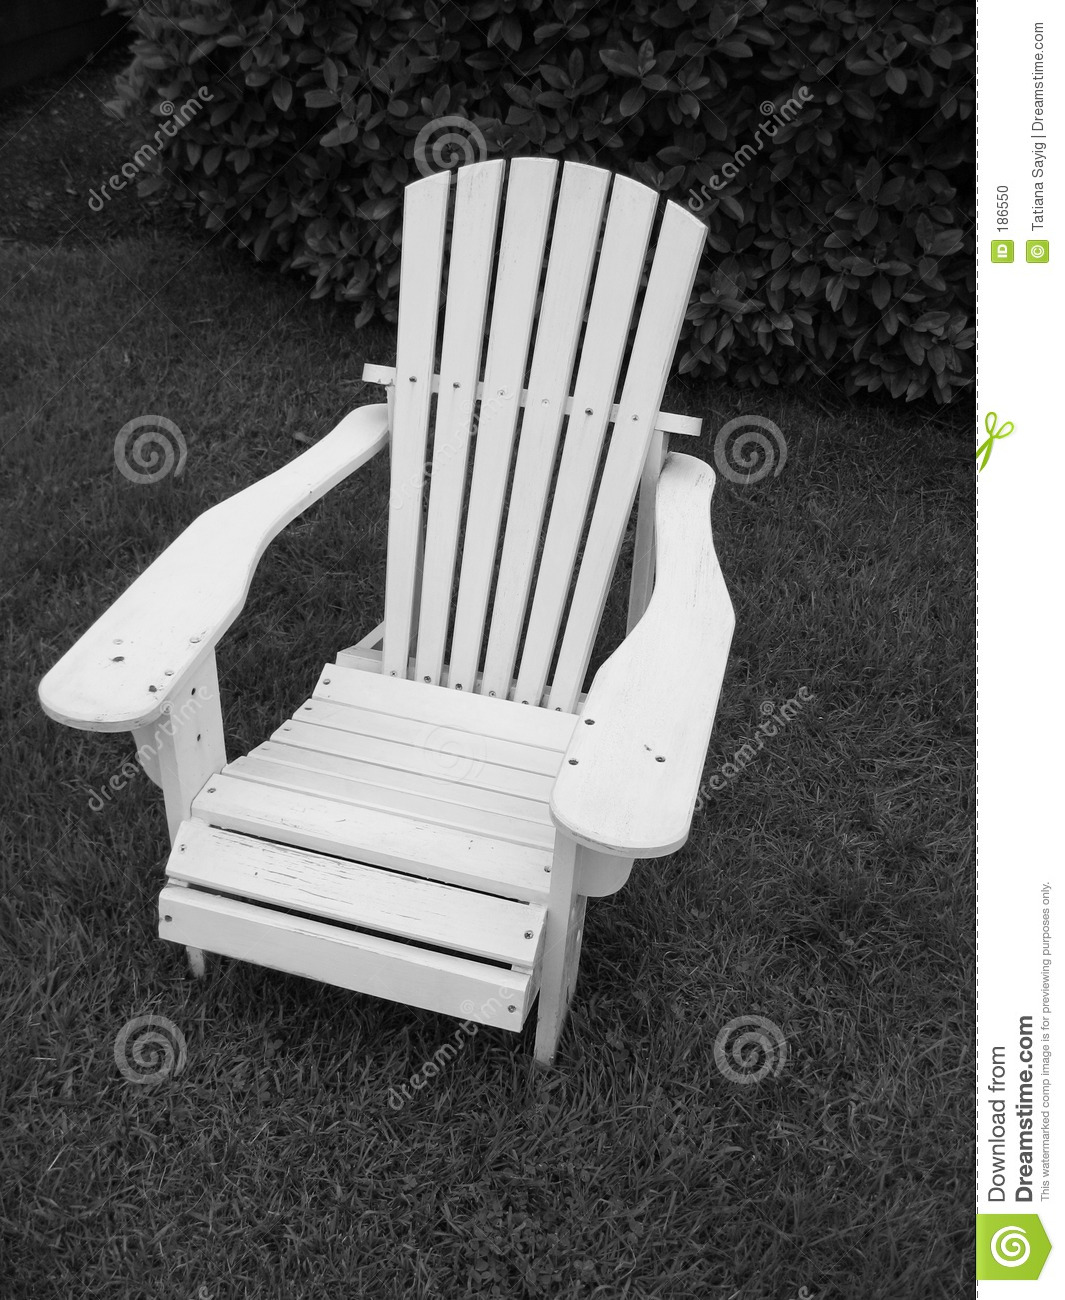 Adirondack Chair__Black y blanco